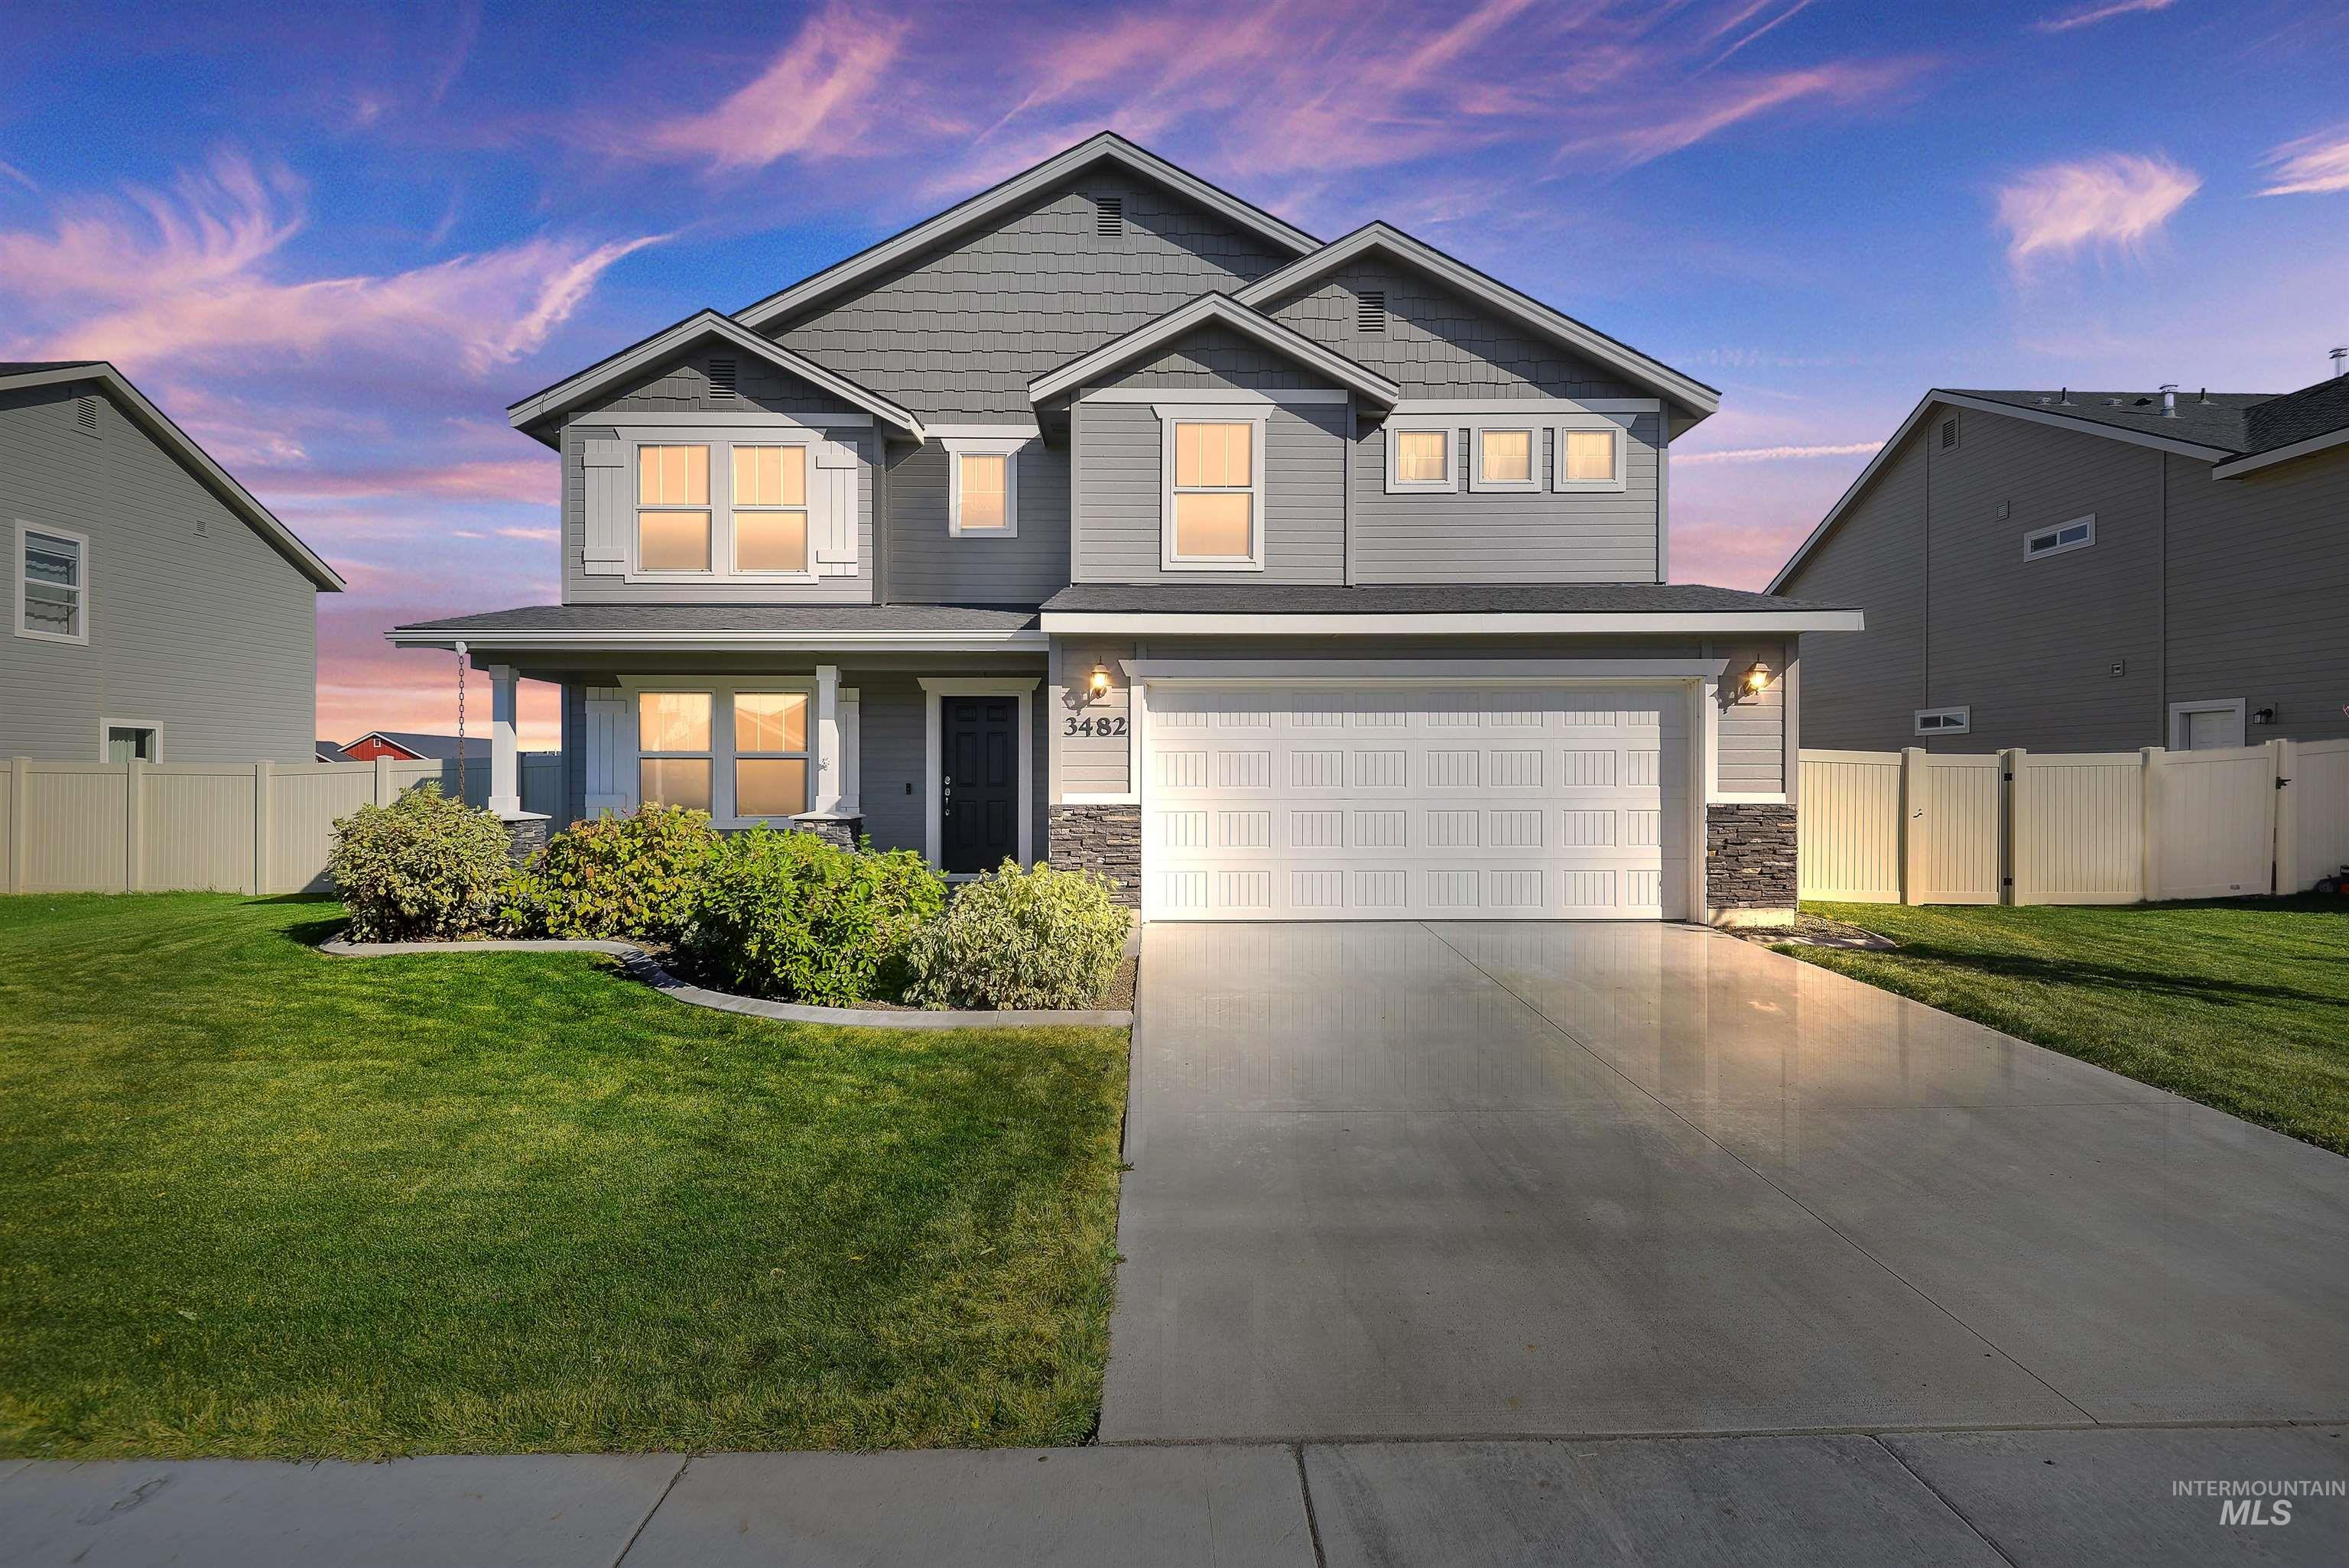 This beautiful GARNET floor plan HOME is only 2 years old and is located in a great, quiet neighborhood. The home has a large kitchen w/granite countertops, subway tile backsplash, island, pantry, and stainless steel appliances. Refrigerator is included! With a spacious main-level den, upstairs has a large loft/bonus room, 4 bedrooms, and laundry room. The large Master bedroom has a walk-in closet and dual vanities in the bathroom with a large soaking tub. Store all your extras in the unbelievable tandem 3 car garage. This home is HERS rated with annual energy savings! Ring doorbell also included! Open House 10/23 & 10/24 from 12-3pm. - Anabel Bentley, Main: 208-204-3860, Keller Williams Realty Boise, Main: 208-672-9000,